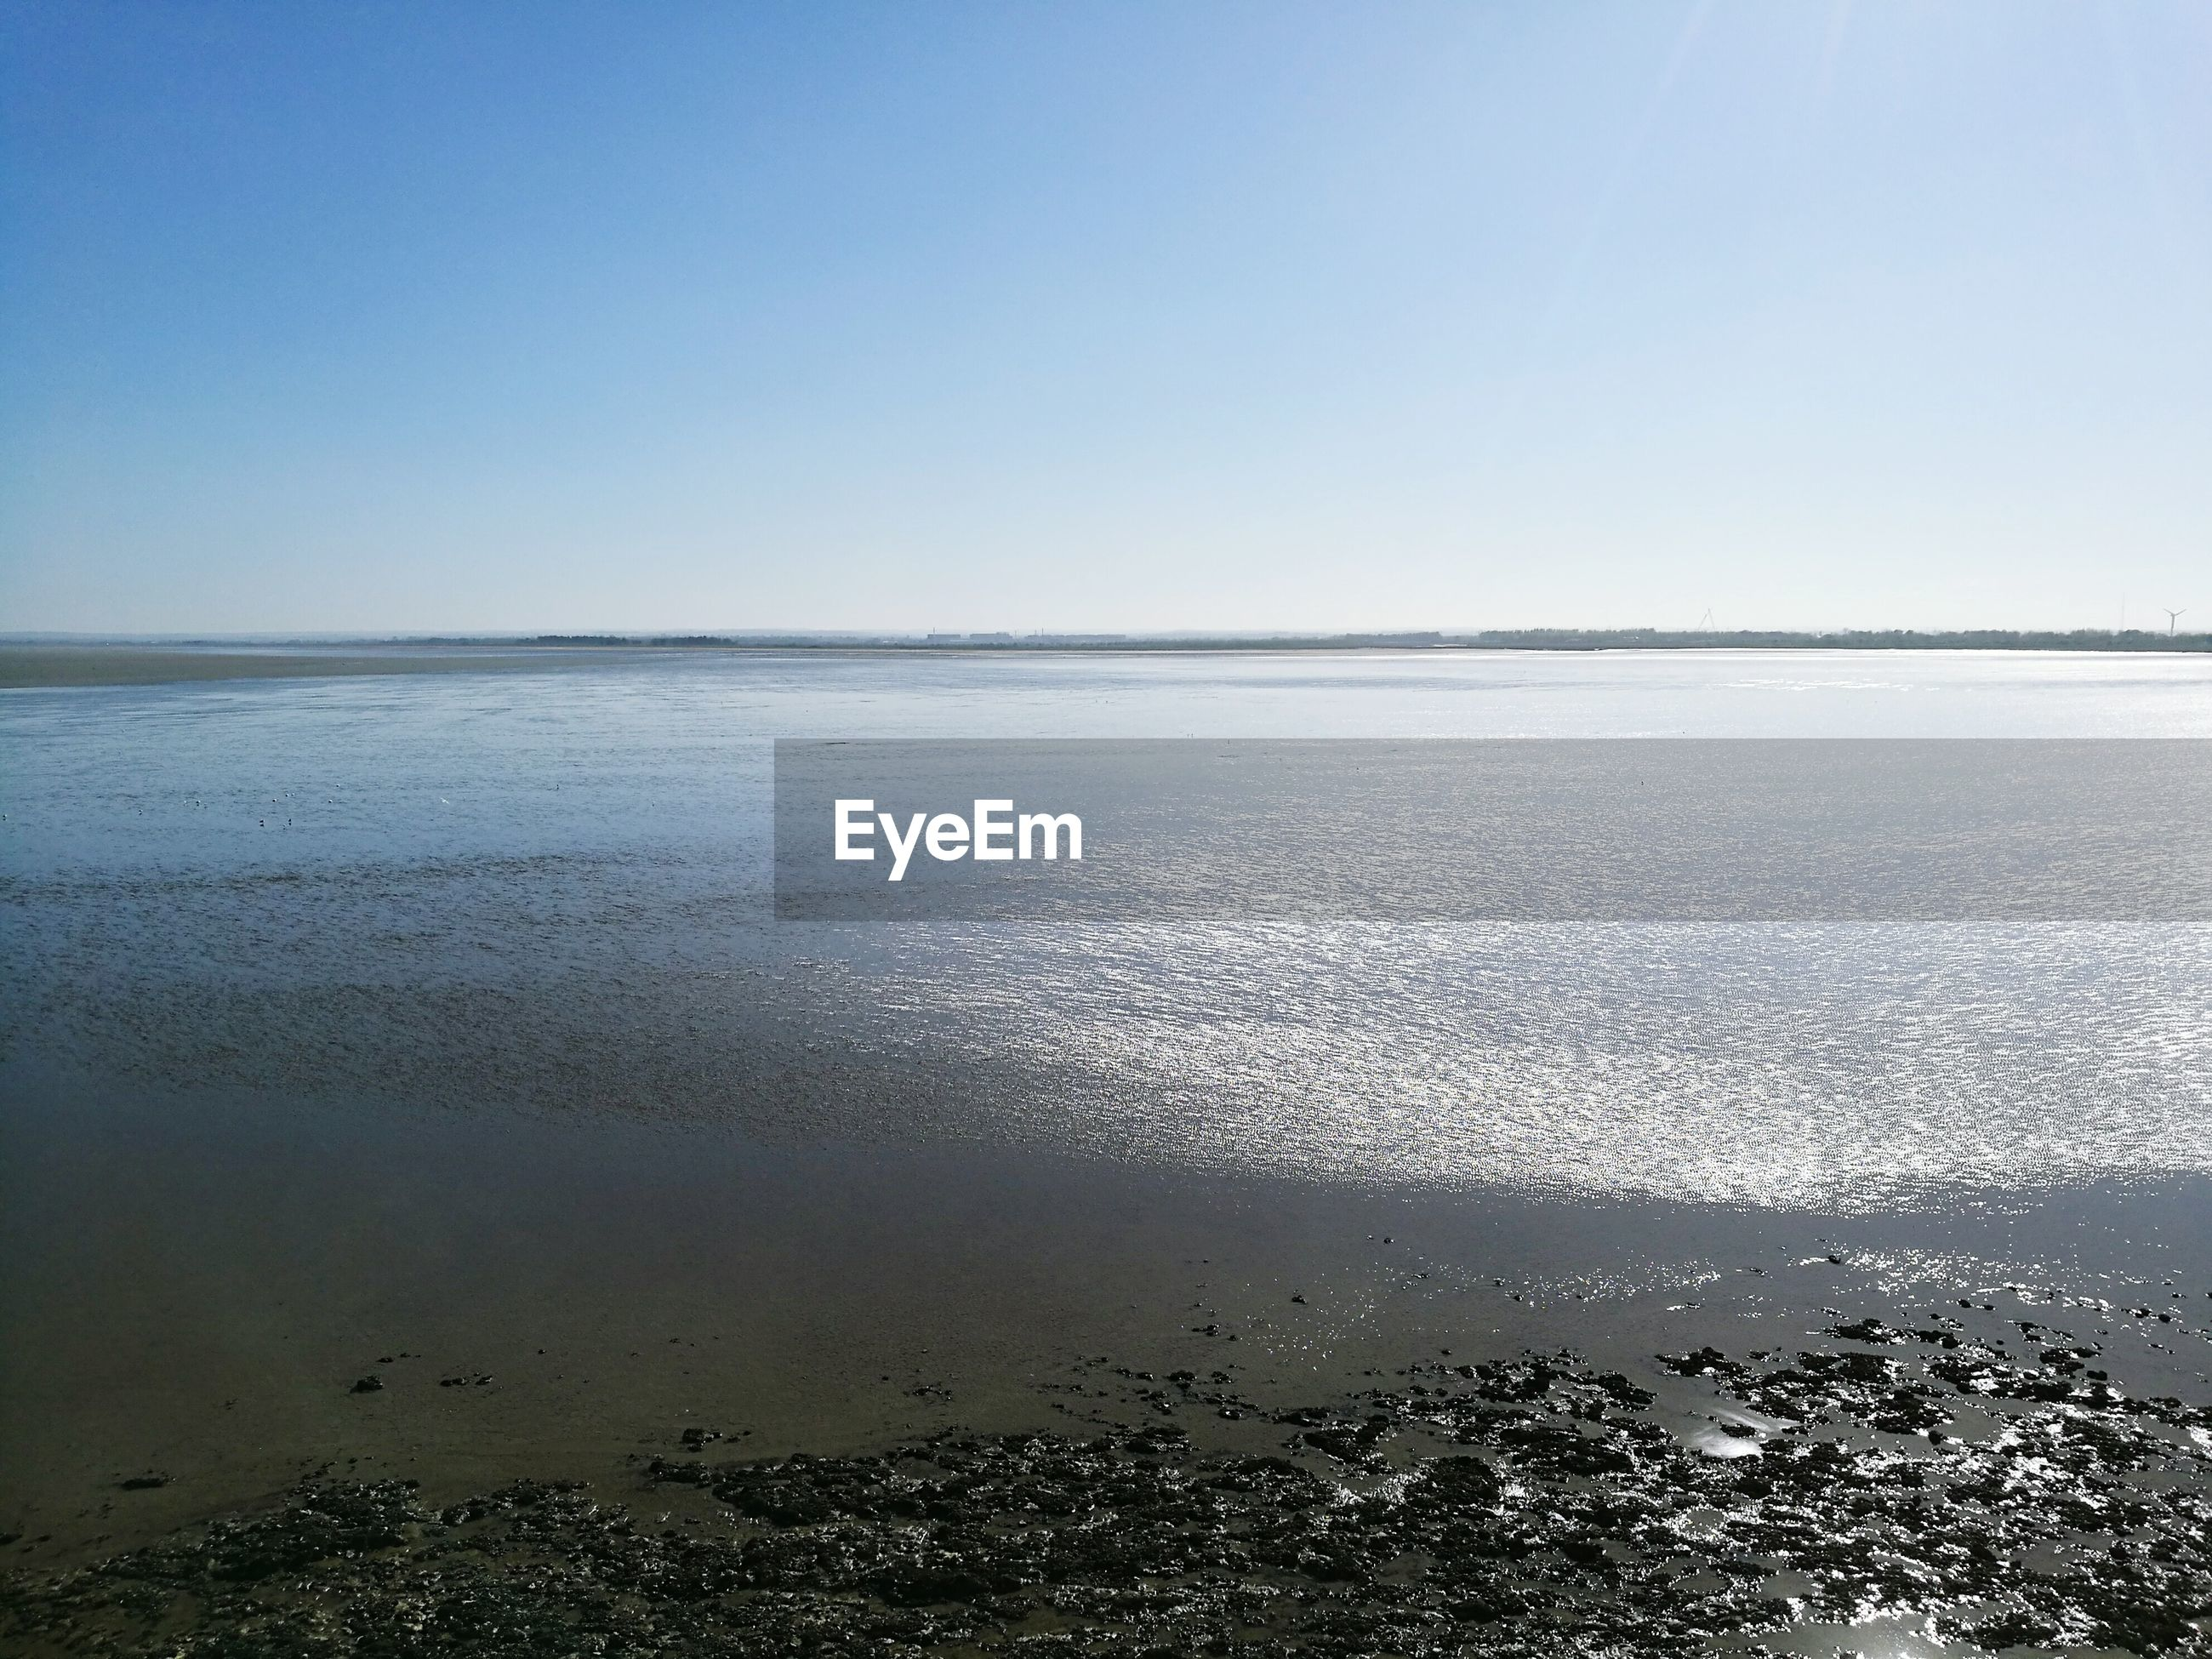 VIEW OF SEA AGAINST CLEAR SKY